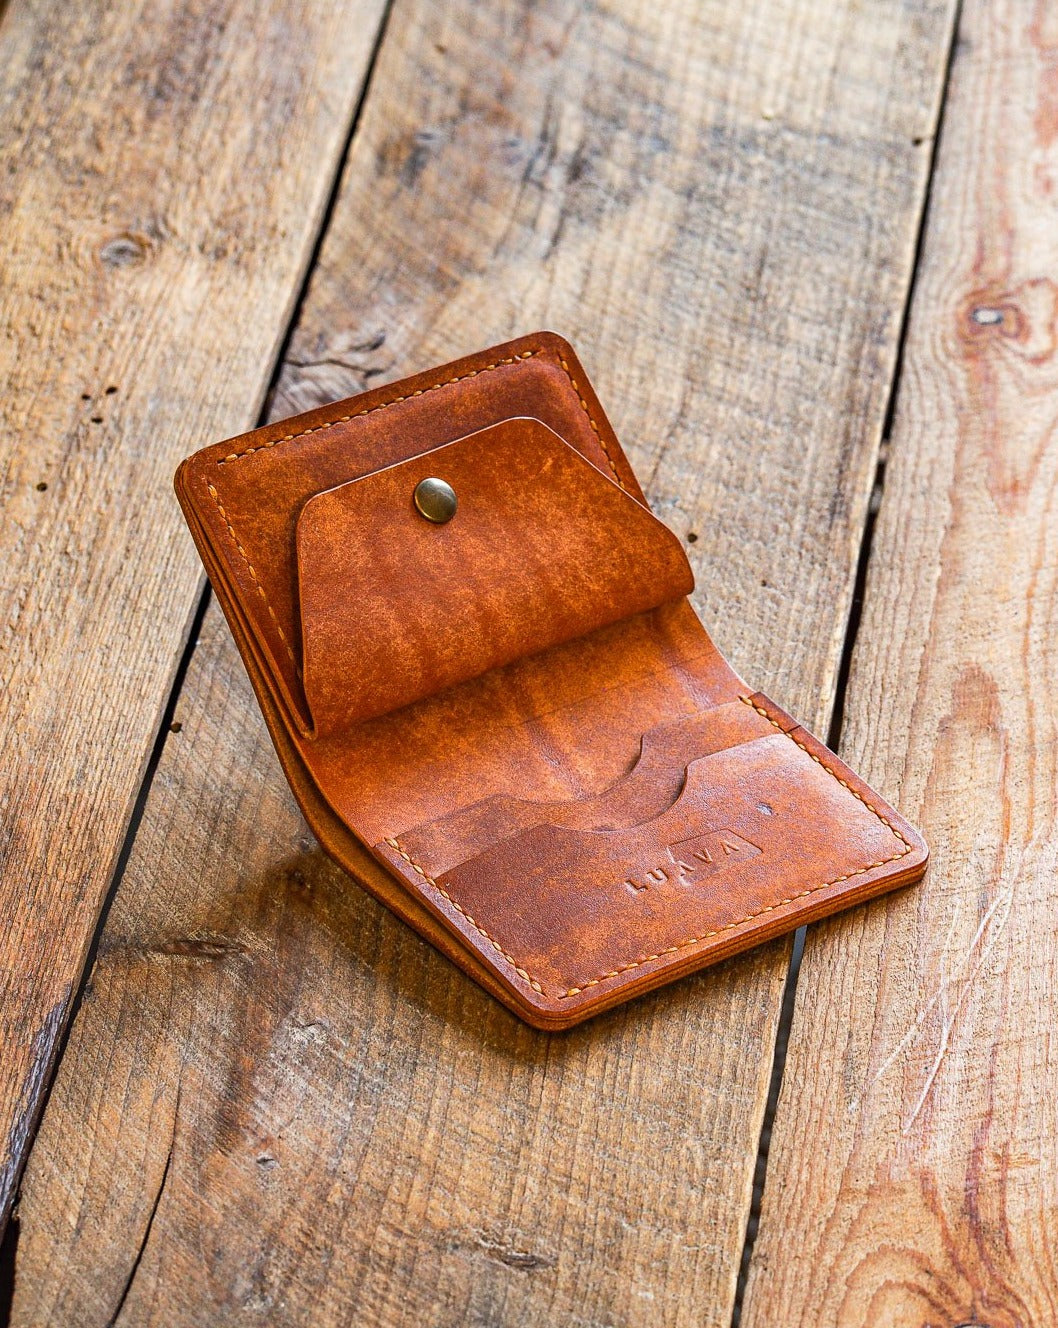 Luava handmade leather wallet KOLOSS pine card holder cardholder handcrafted pecos raw whiskey front open